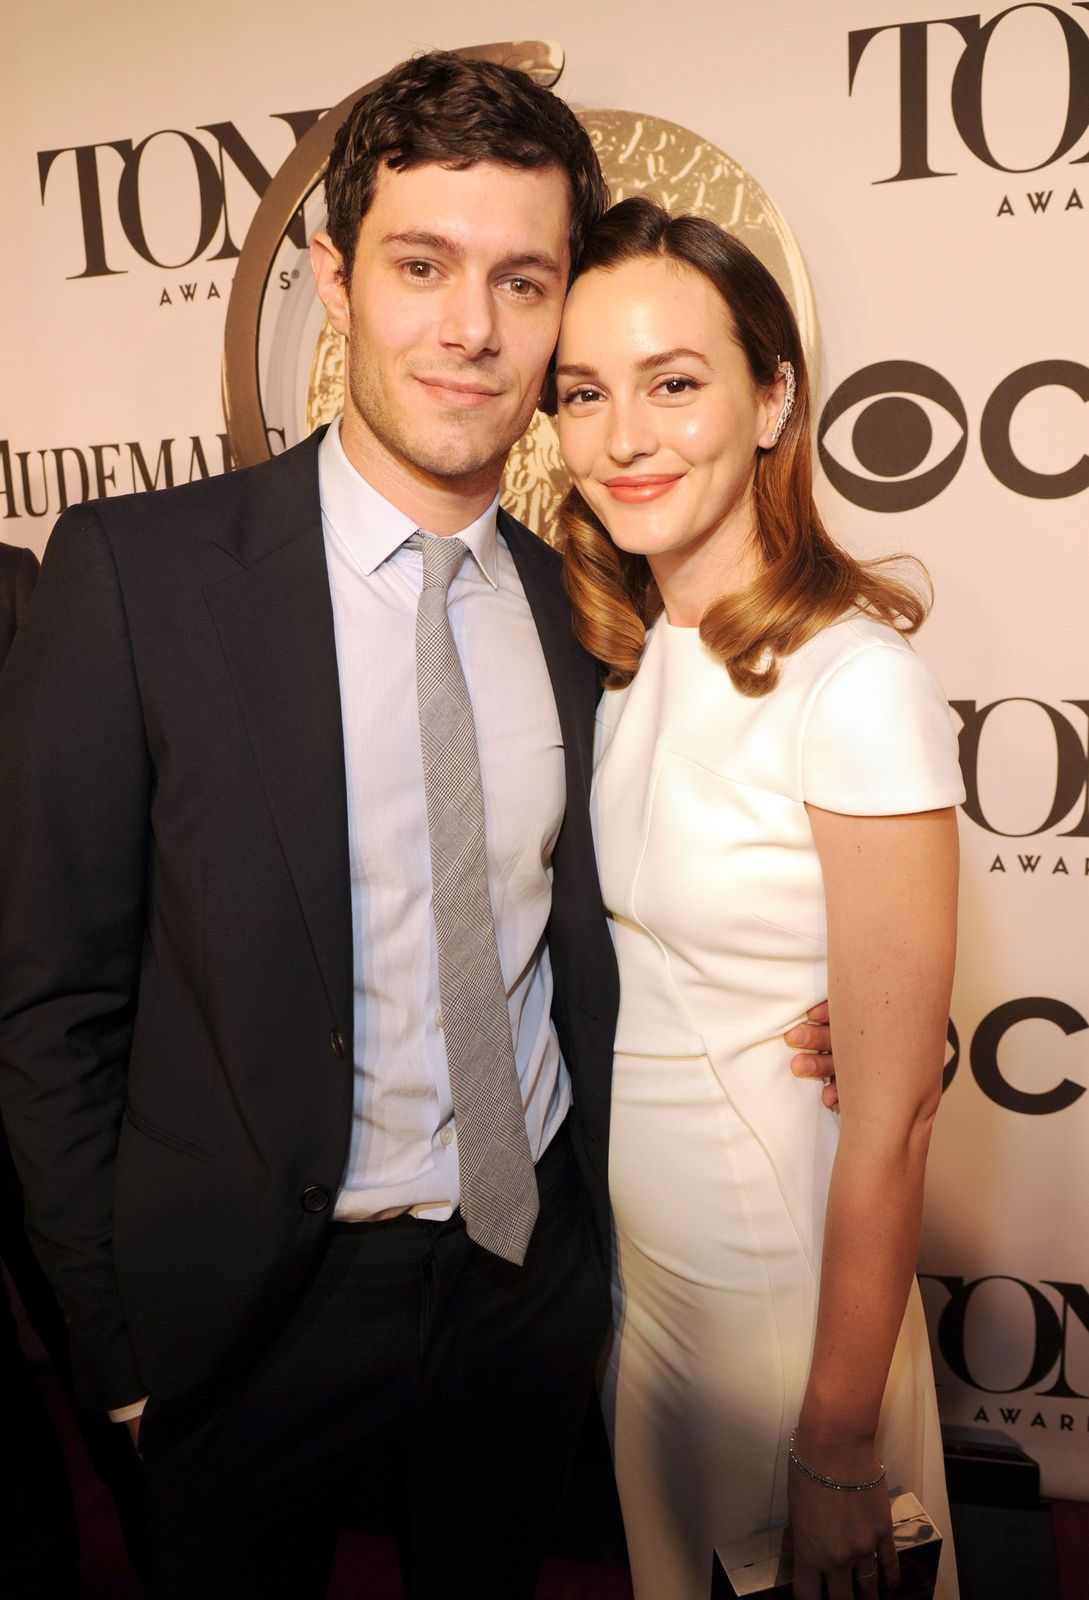 Leighton Meester and Adam Brody attending the Tony Awards/Photo: Getty Images